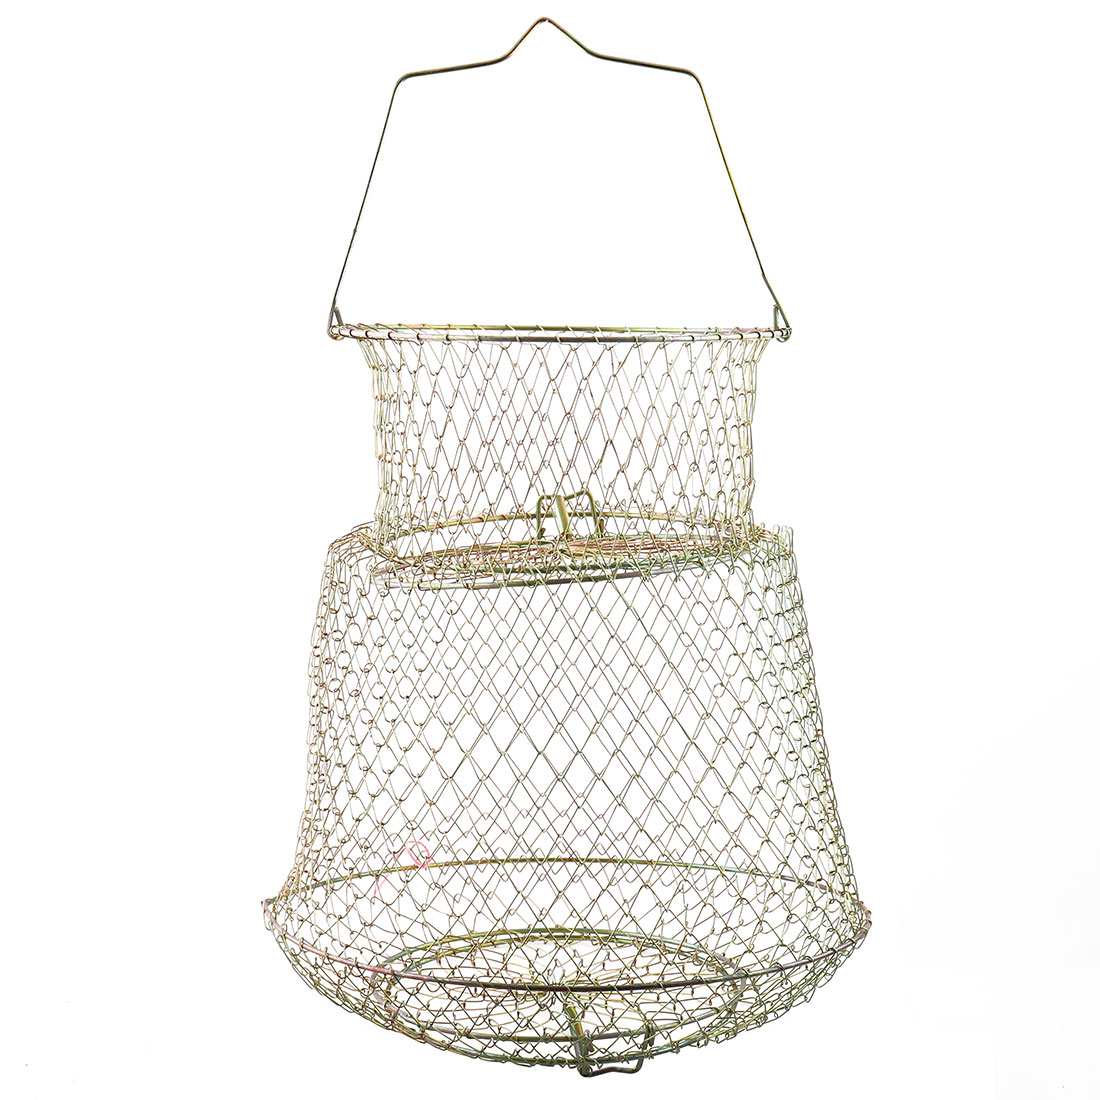 Metal Collapsible Lobster Crab Hoop Net with Handle